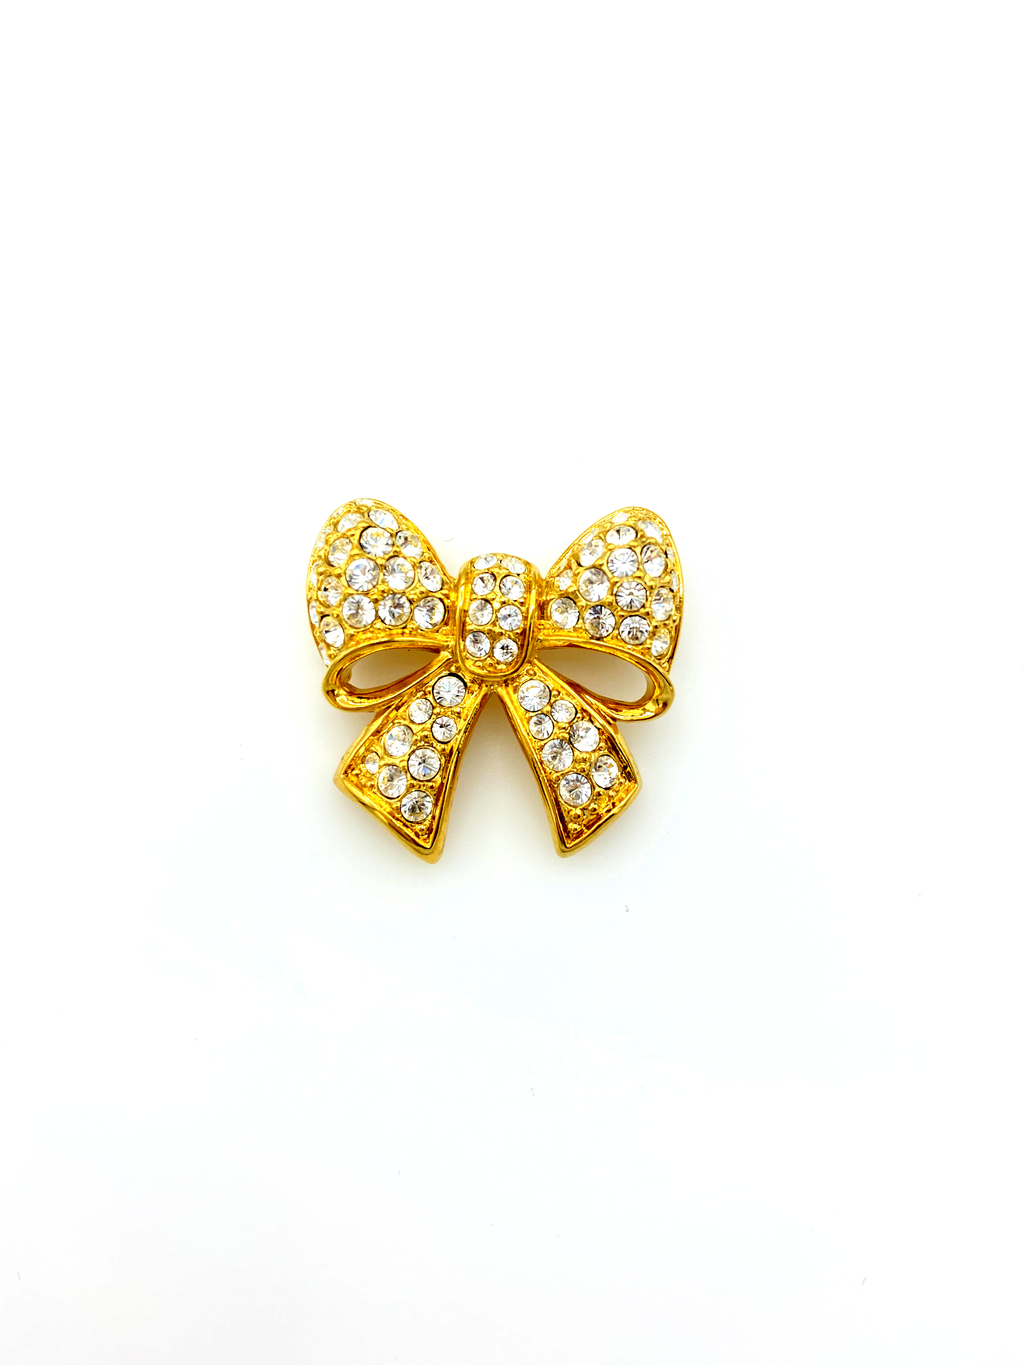 update alt-text with template Gold Swarovski Petite Pave Bow Rhinestone Brooch-Brooches & Pins-24 Wishes-[trending designer jewelry]-[swarovski jewelry]-[Sustainable Fashion]